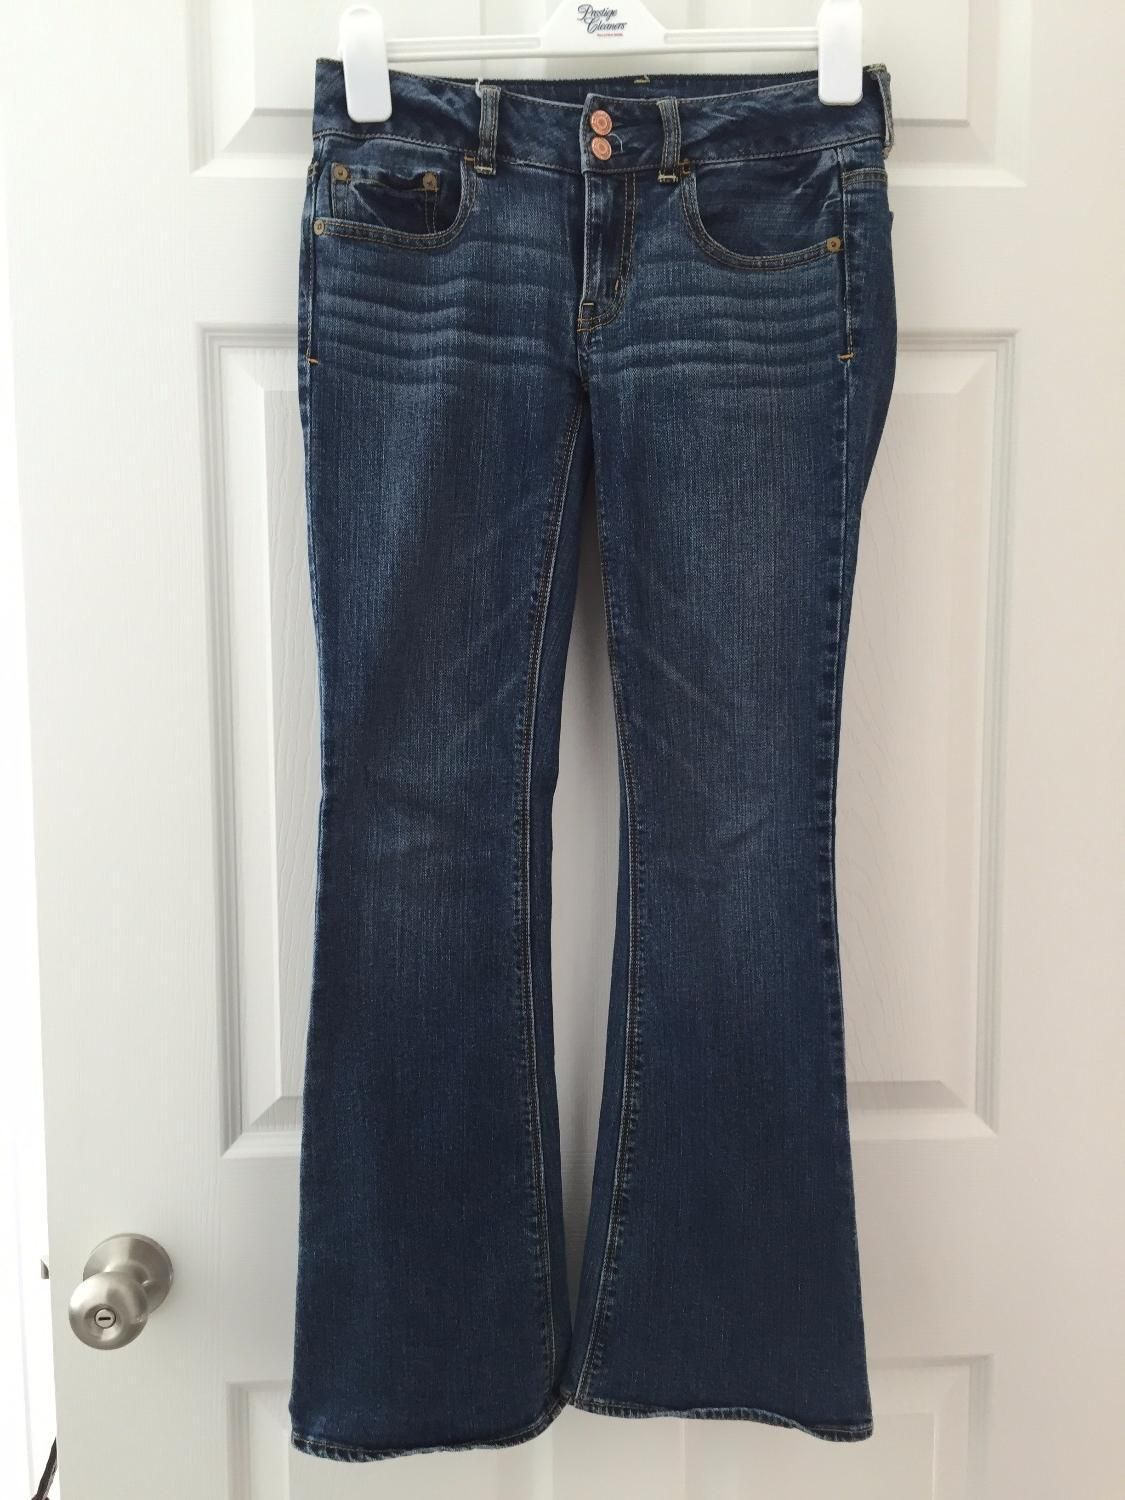 For Sale: GREAT JEANS FROM AMERICAN EAGLE! - Medium blue color. In top condition. Size 0-2